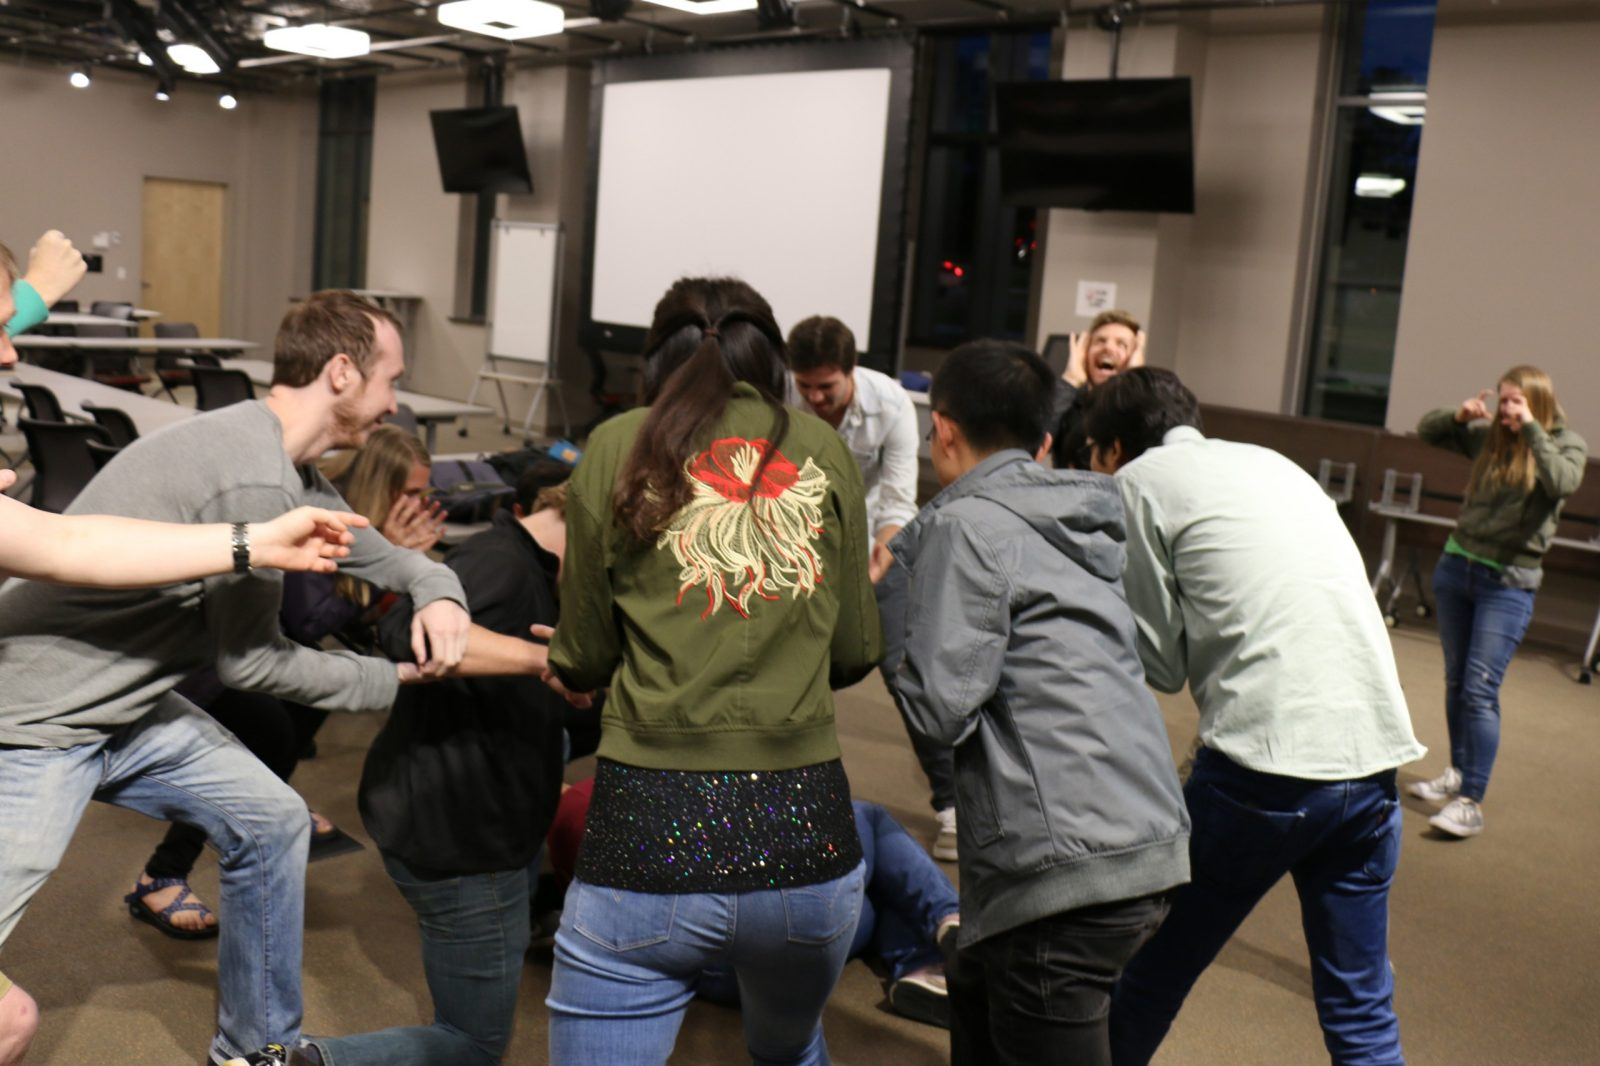 This photo shows at least 10 people in a classroom, several of whom are in a circle pointing at someone on the floor. Another is in the right background holding a pretend camera to her face.